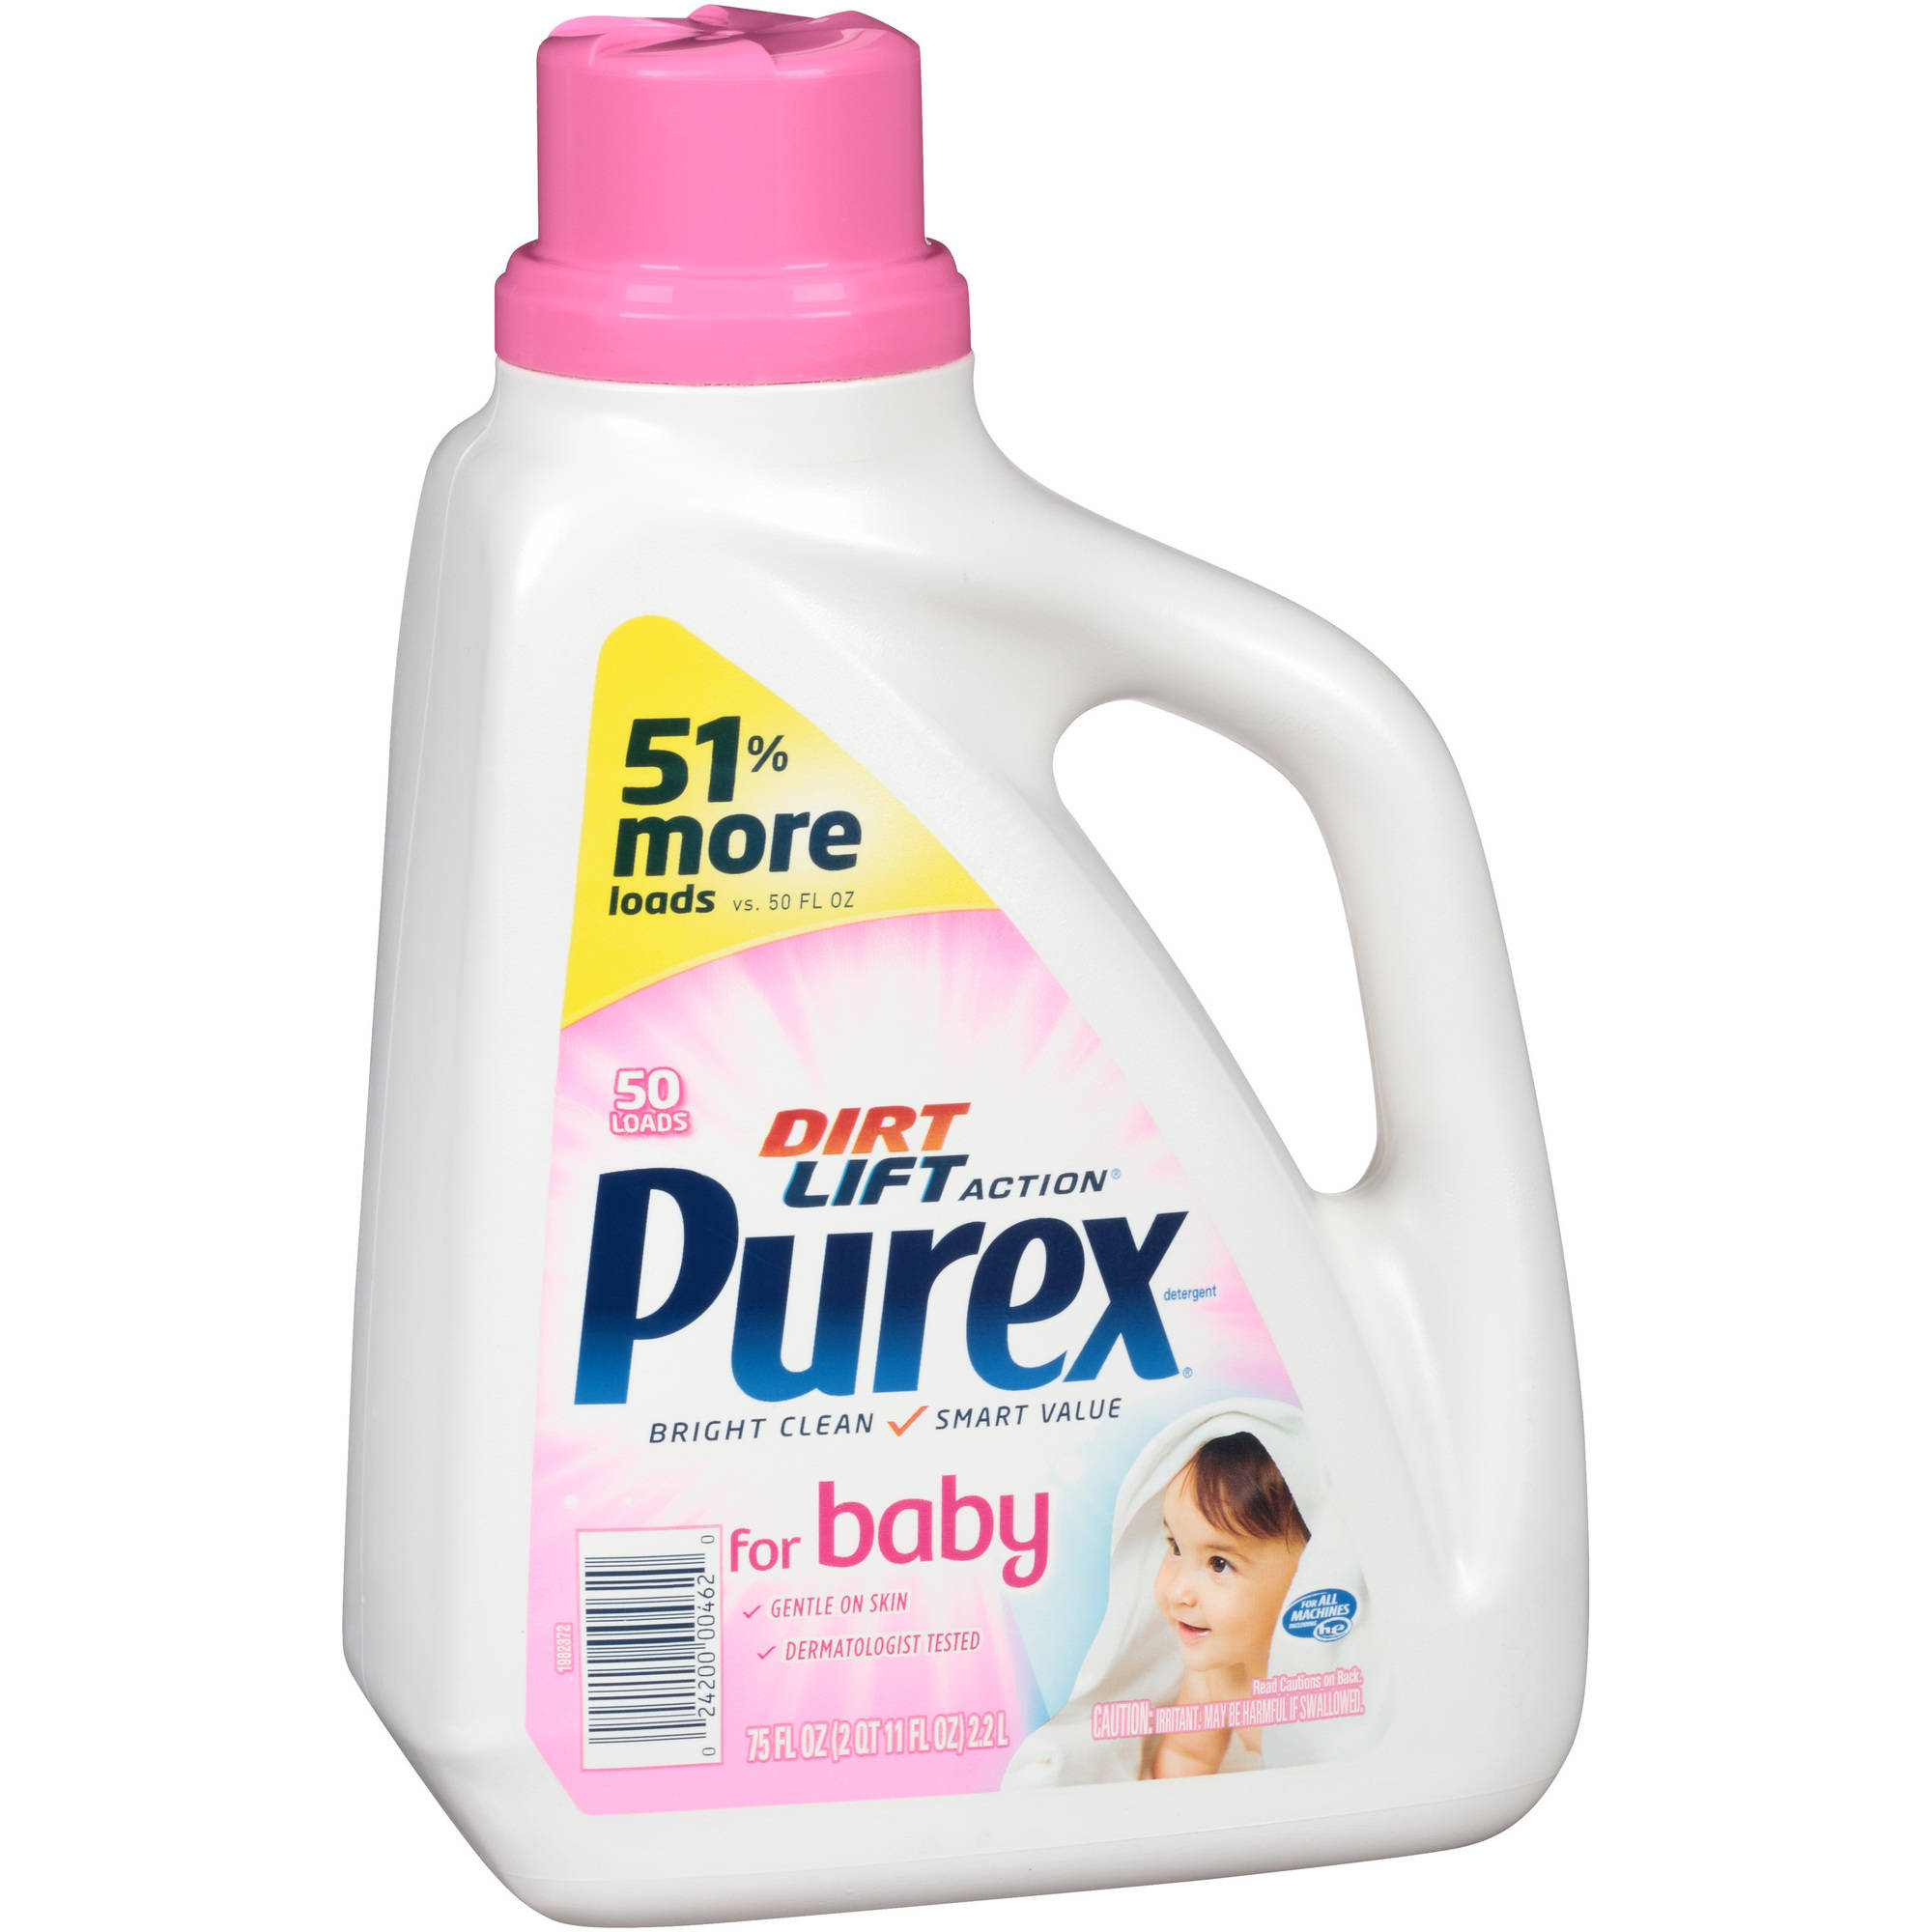 Purex Dirt Lift Action Liquid Laundry Detergent for Baby, 75 fl oz